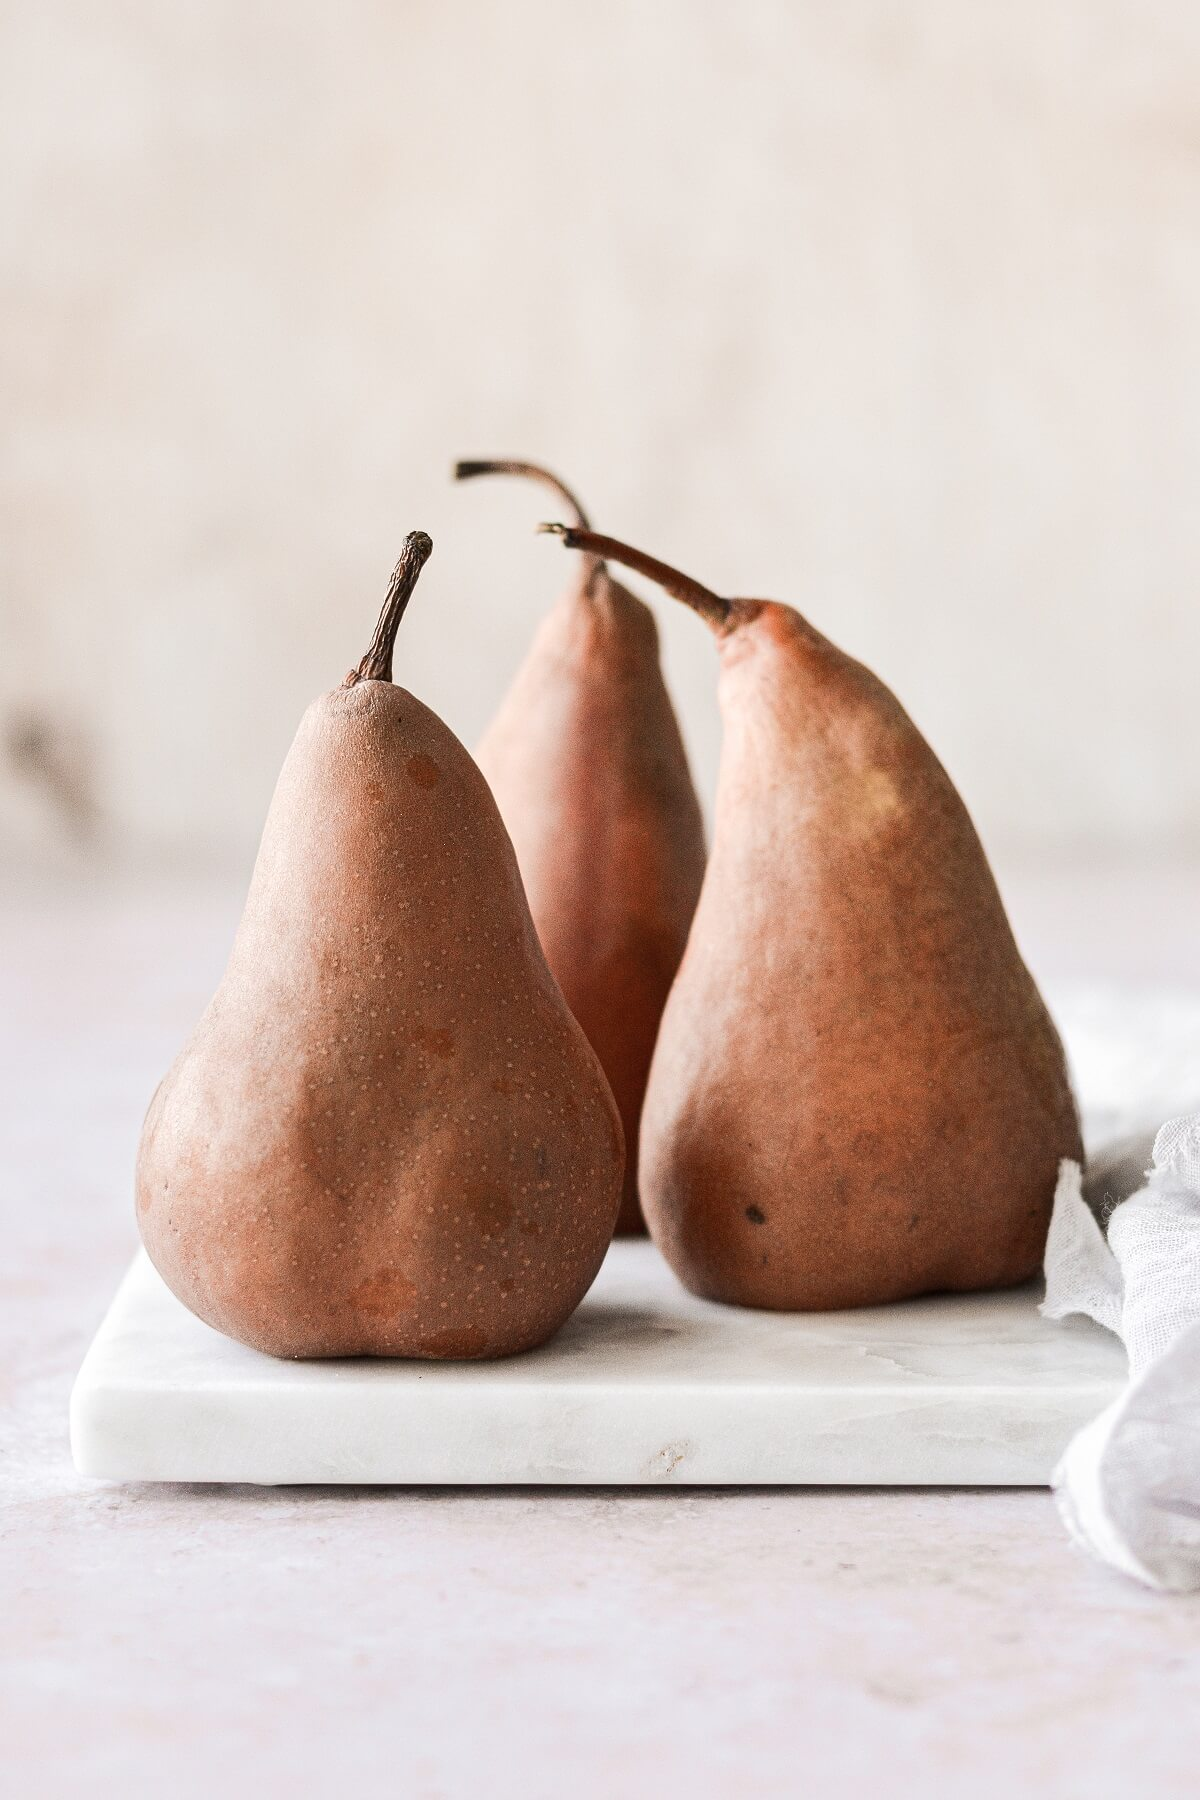 Three pears sitting on a white marble board.